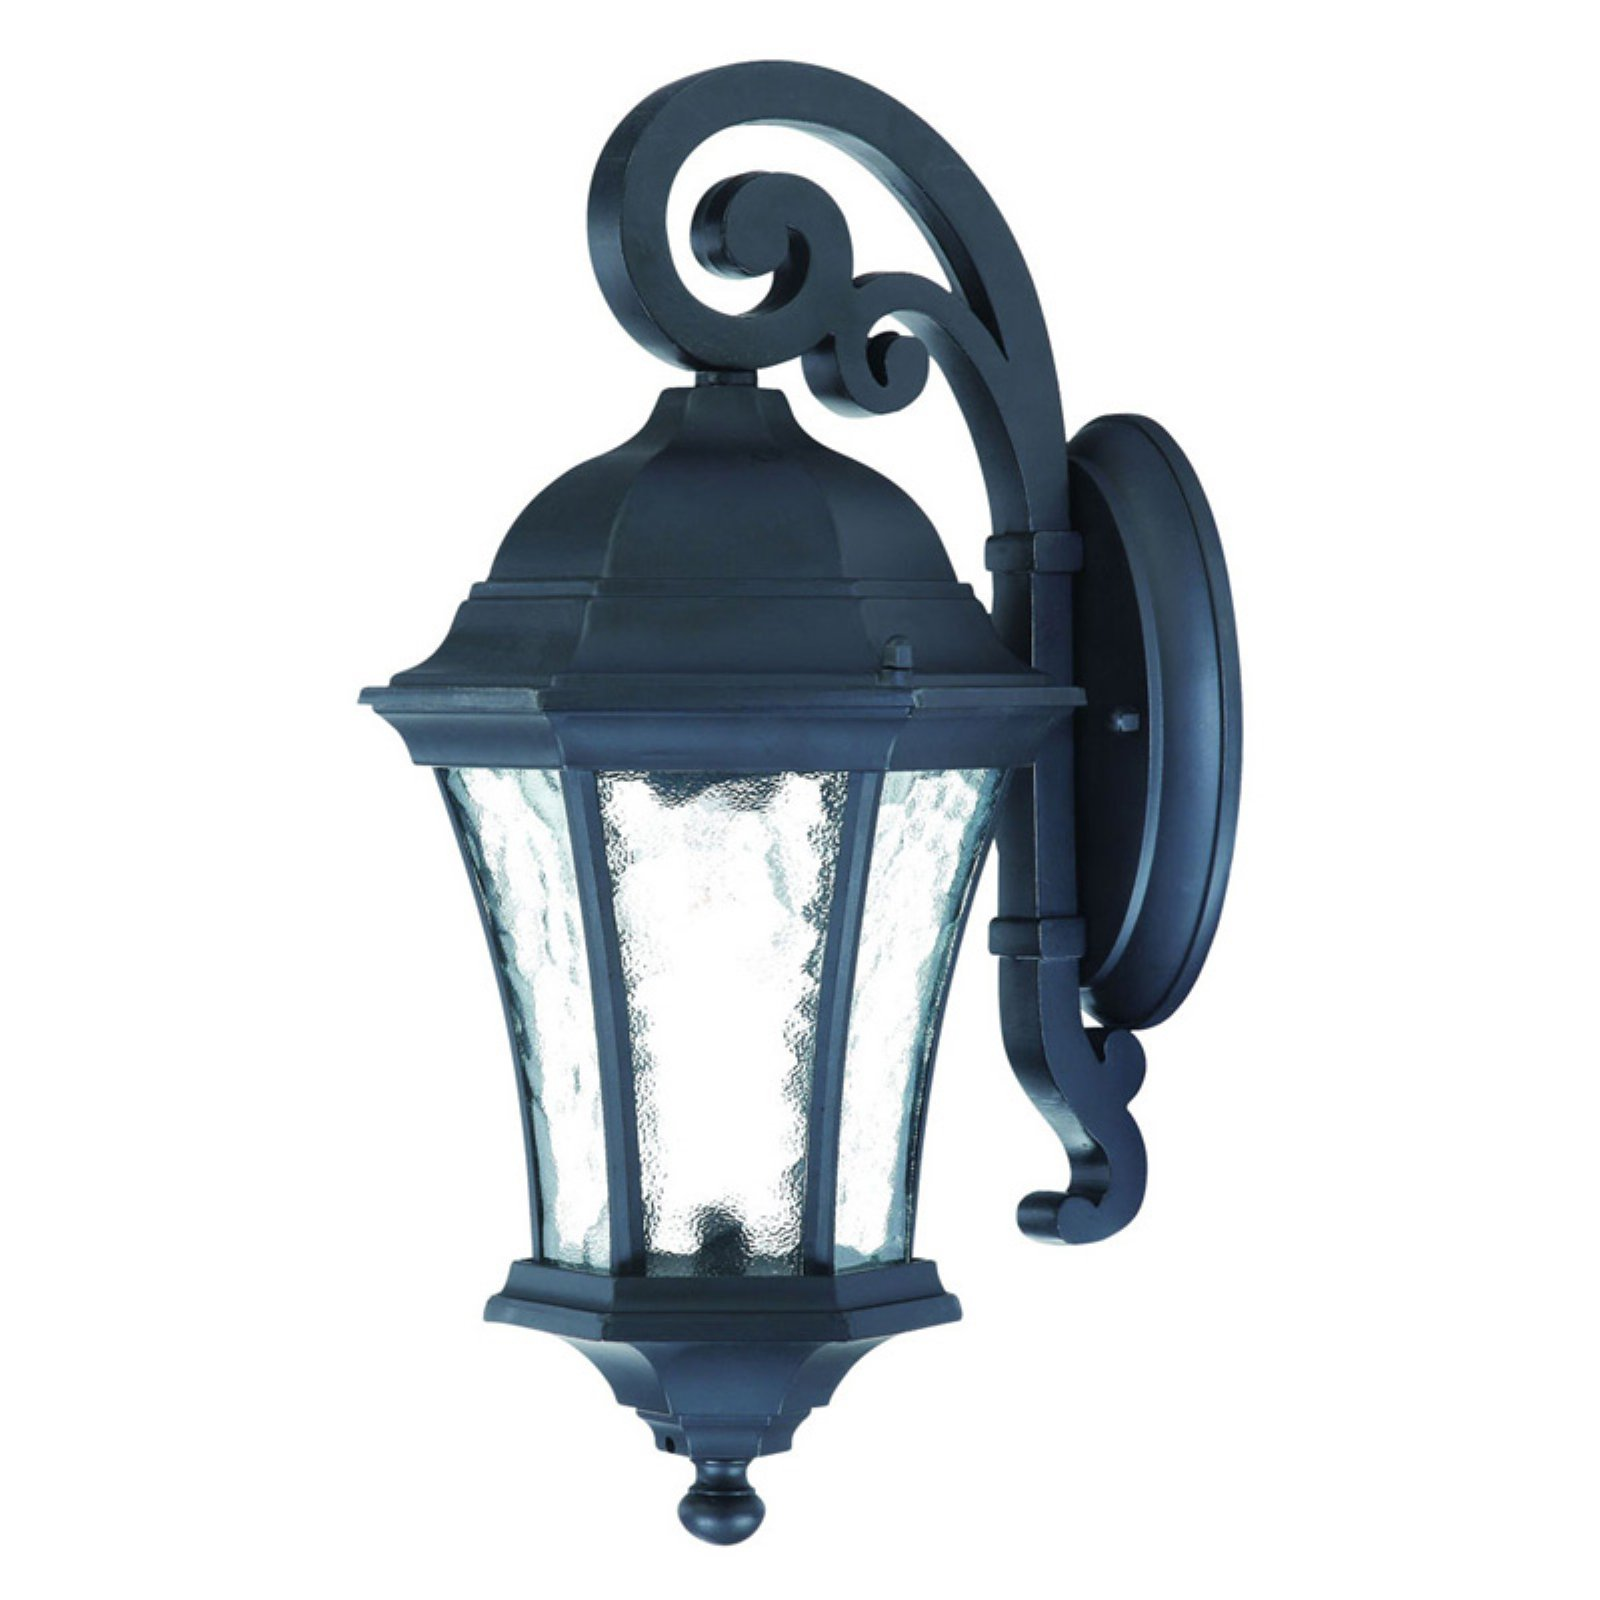 Acclaim Lighting Waverly Outdoor Wall Mount Light Fixture